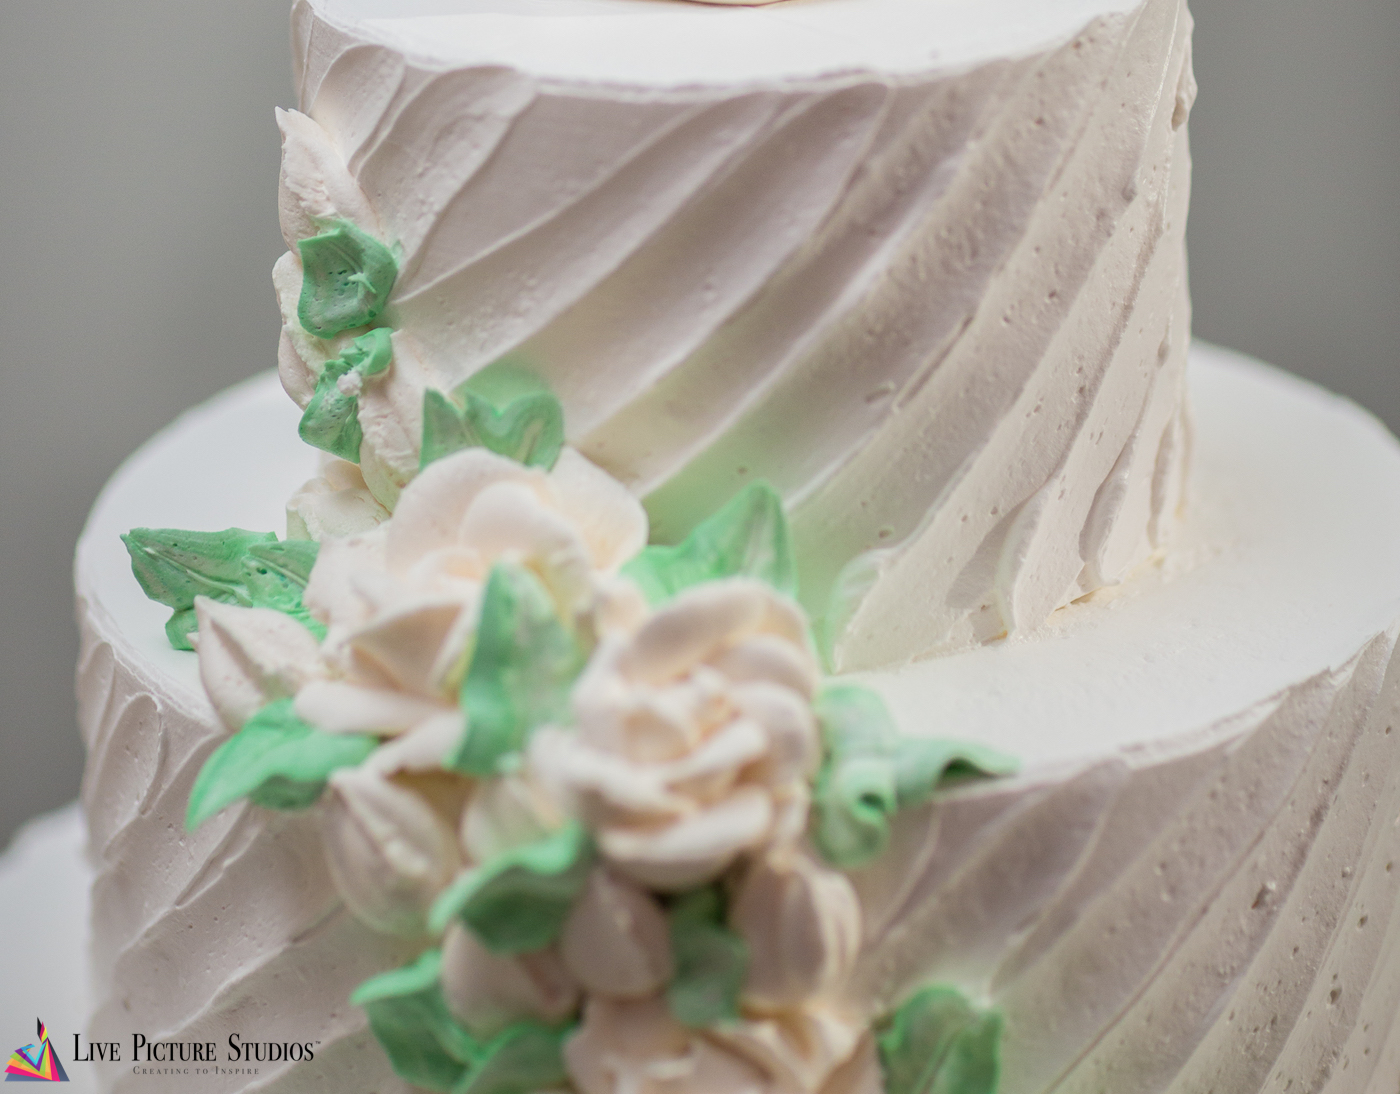 Longtime NJ Wedding Videographers Weigh in on the Rough Icing Cake Trend